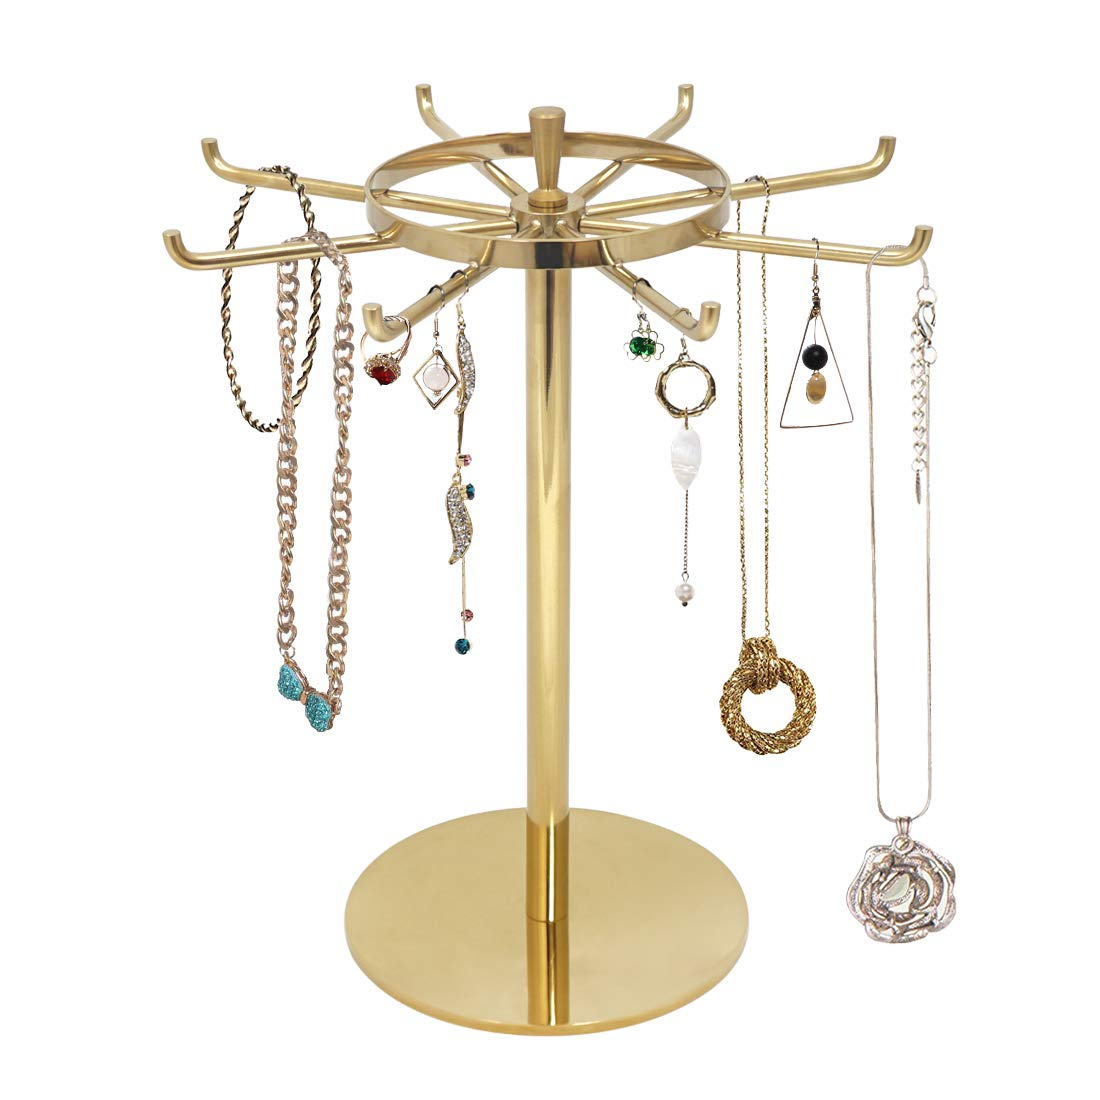 Metal Jewelry Display Stand, Gold Rotatable Table Top Jewelry Display Holder Necklaces, Bracelets, Earrings, Ring Hanging Jewelry Organizer,Gold